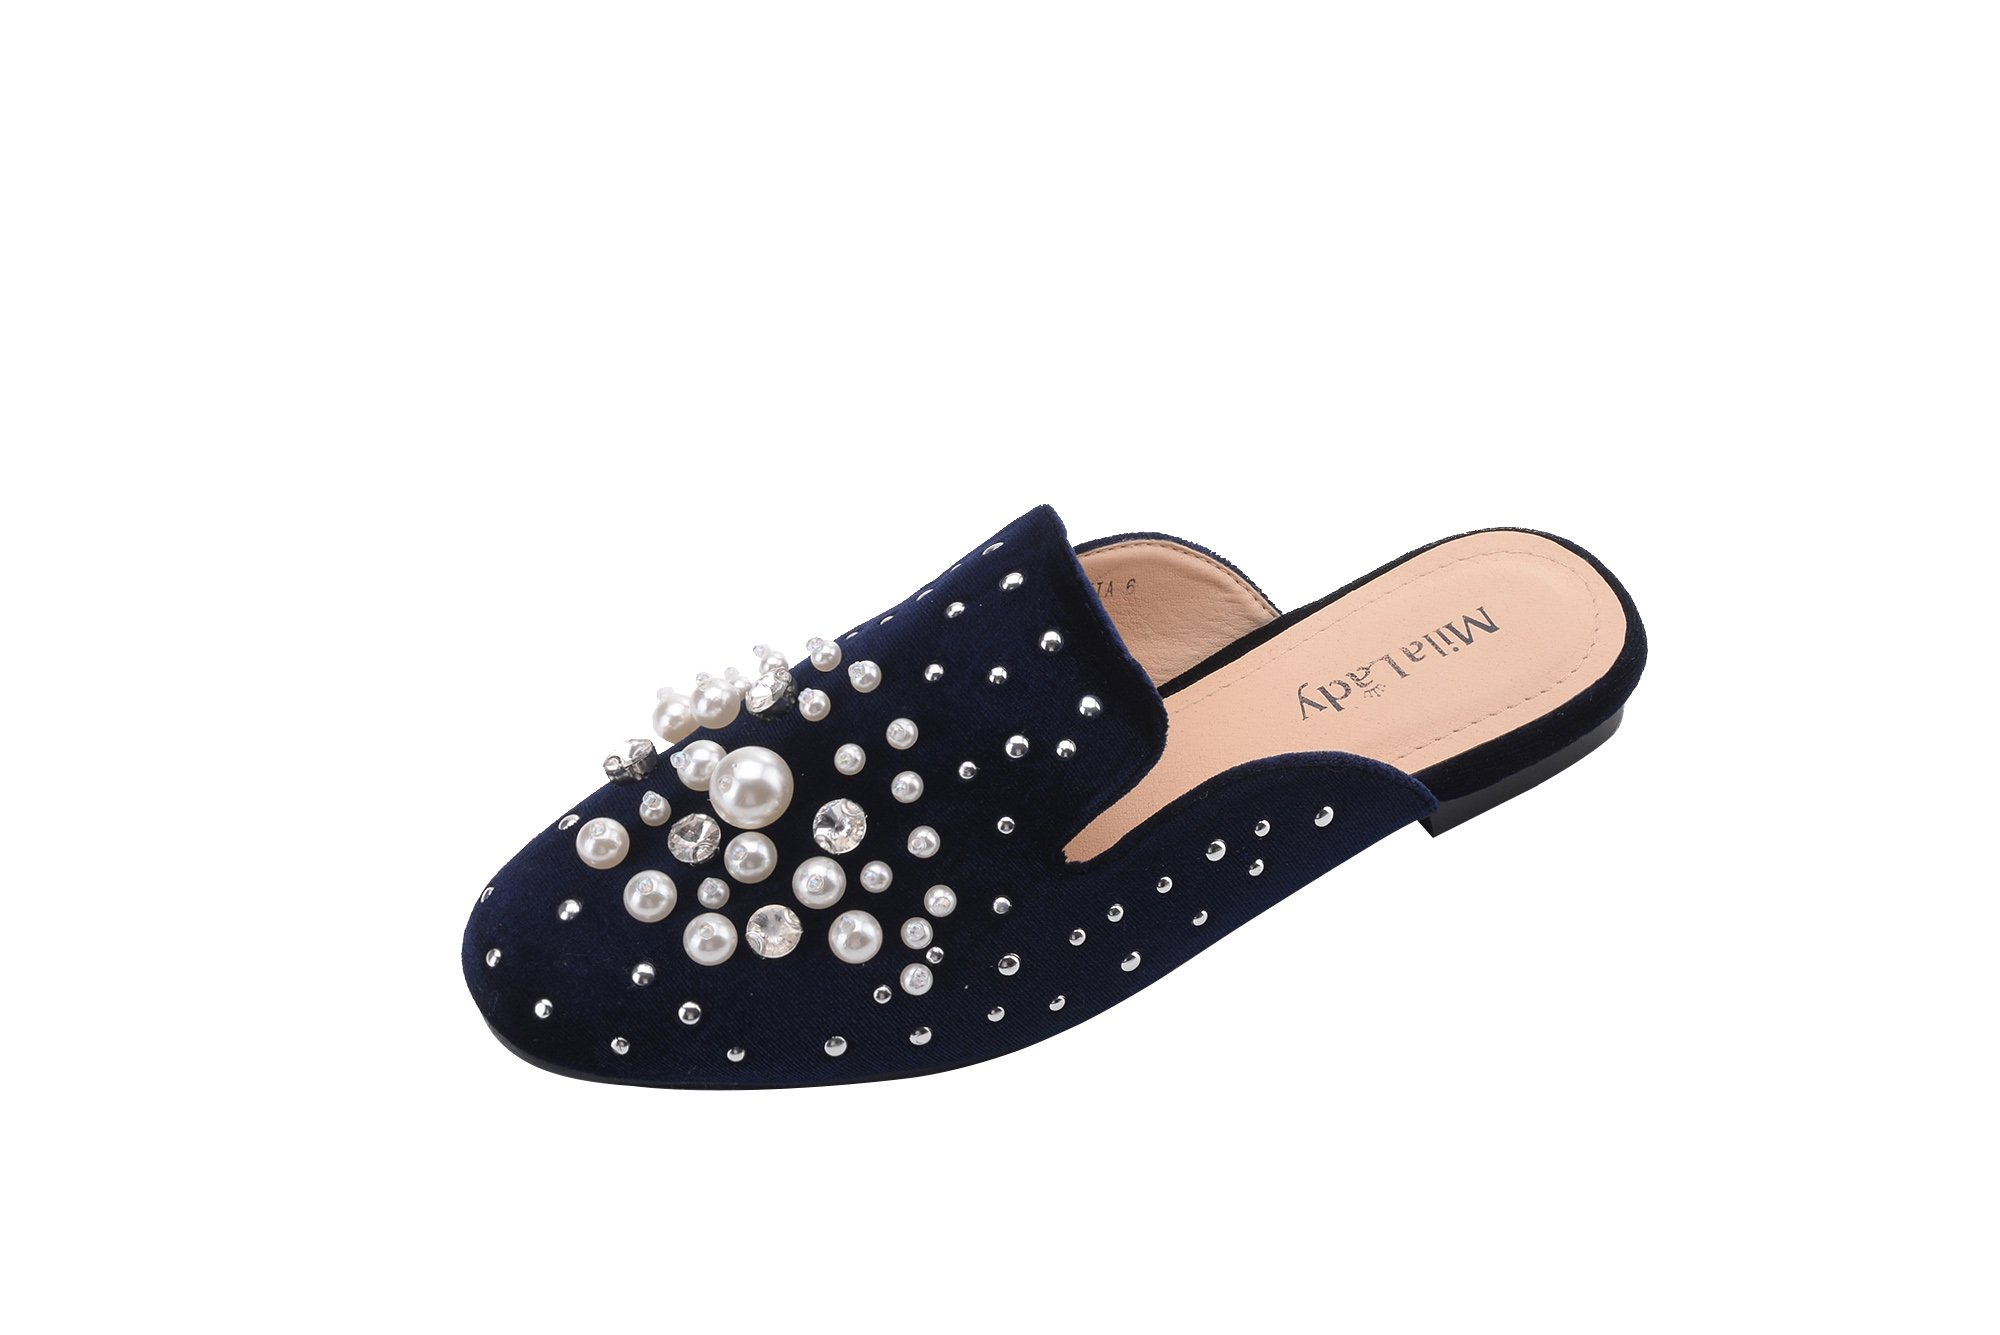 Mila Lady Womens Casual Slip On Low Heeled Mules Loafer Sandals Shoes, Sylvia Navy 9